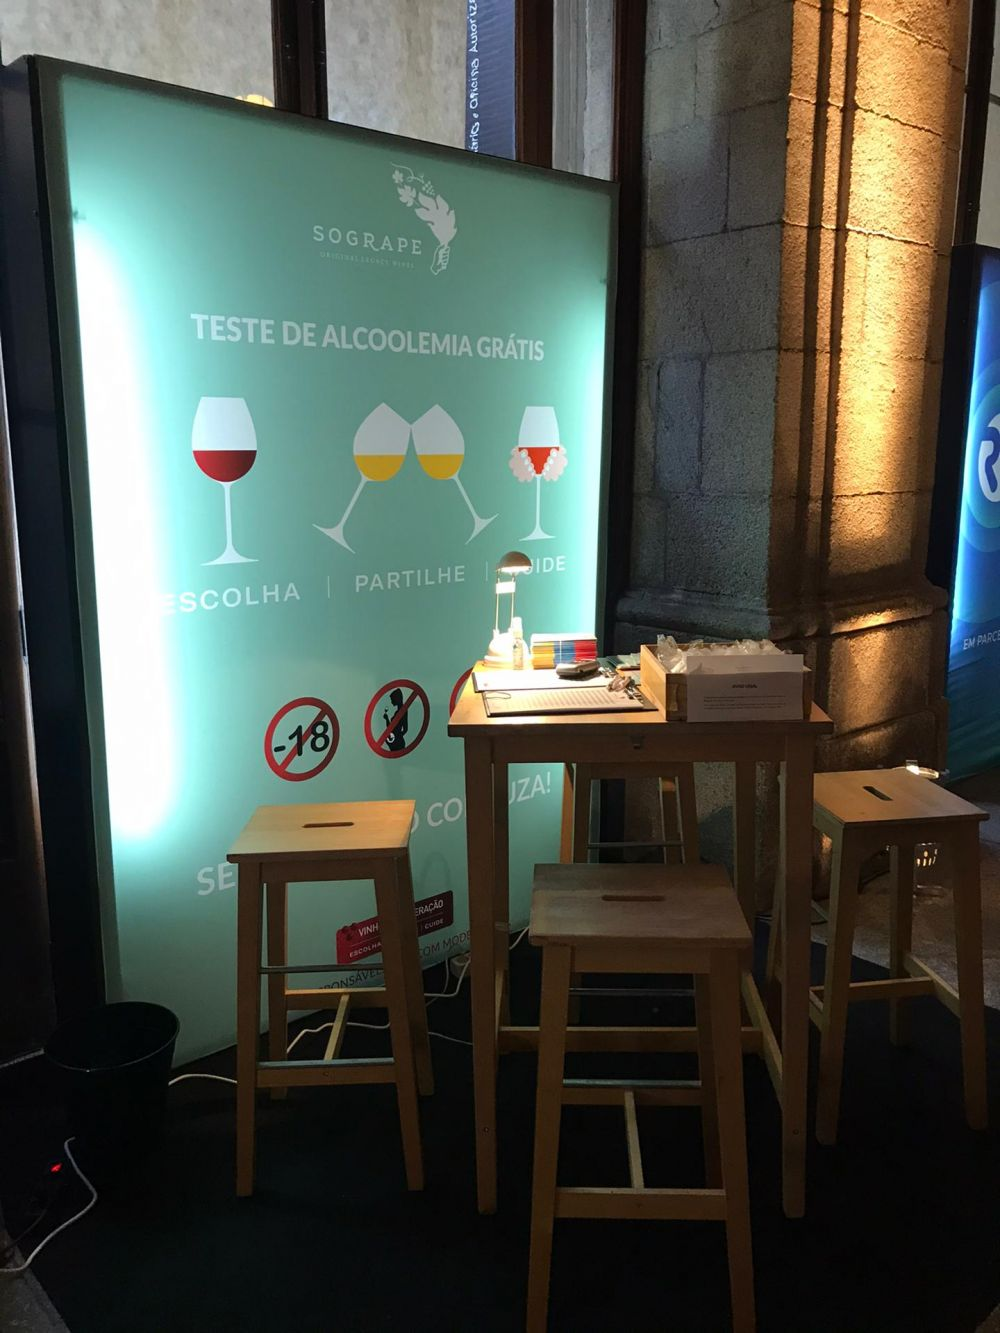 Another new record of Breathalyzer tests set at Essência do Vinho by Sogrape